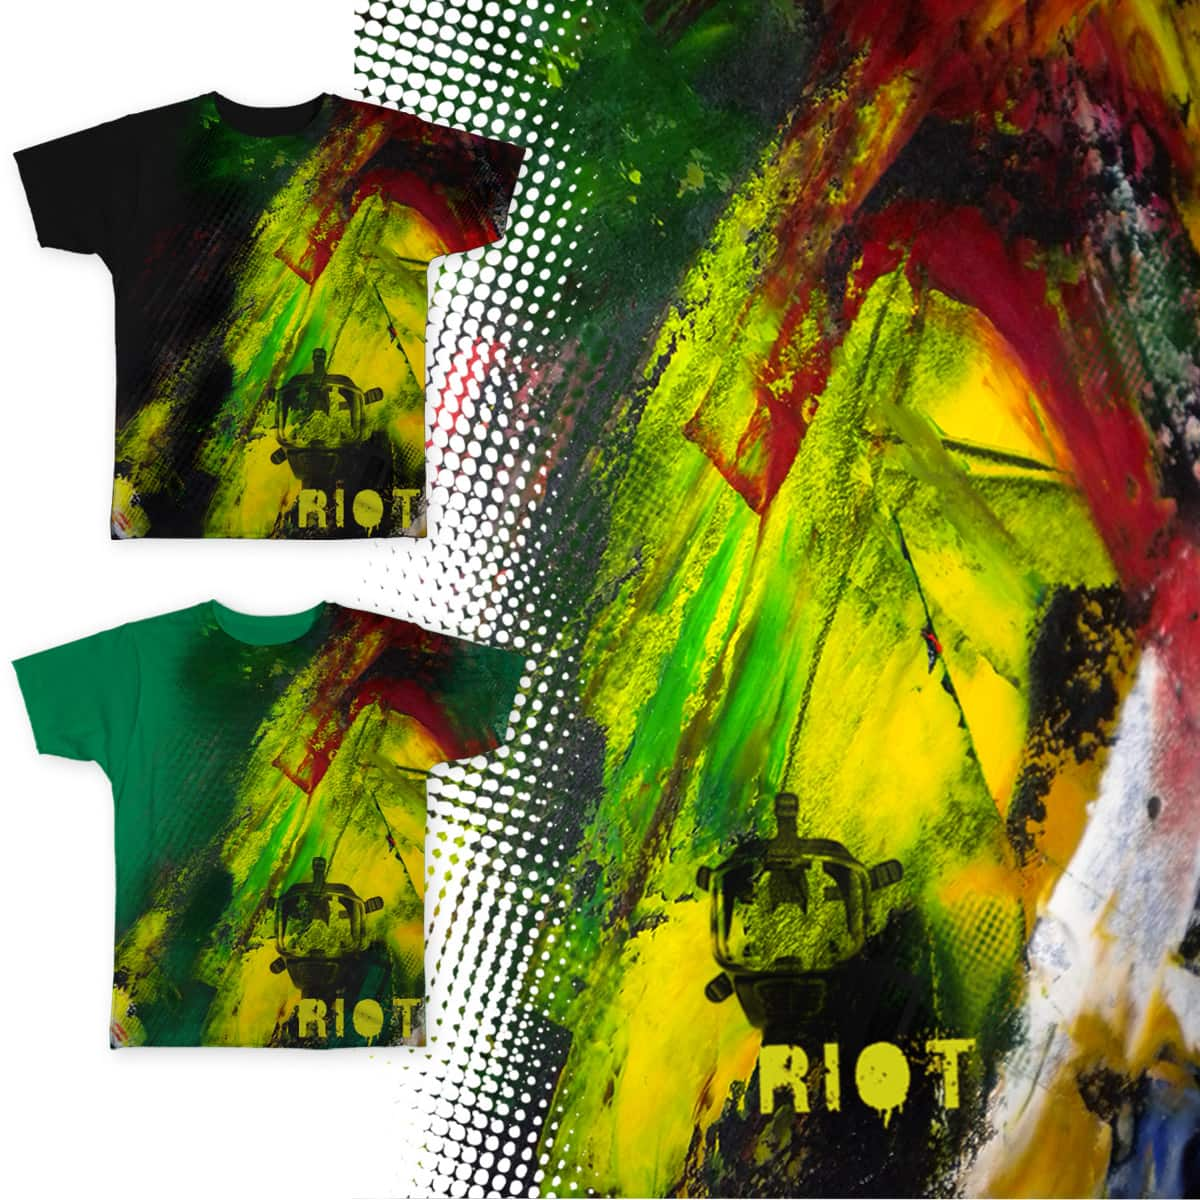 RiOT witH cOLour by darEyiO and ARTyNAgia on Threadless